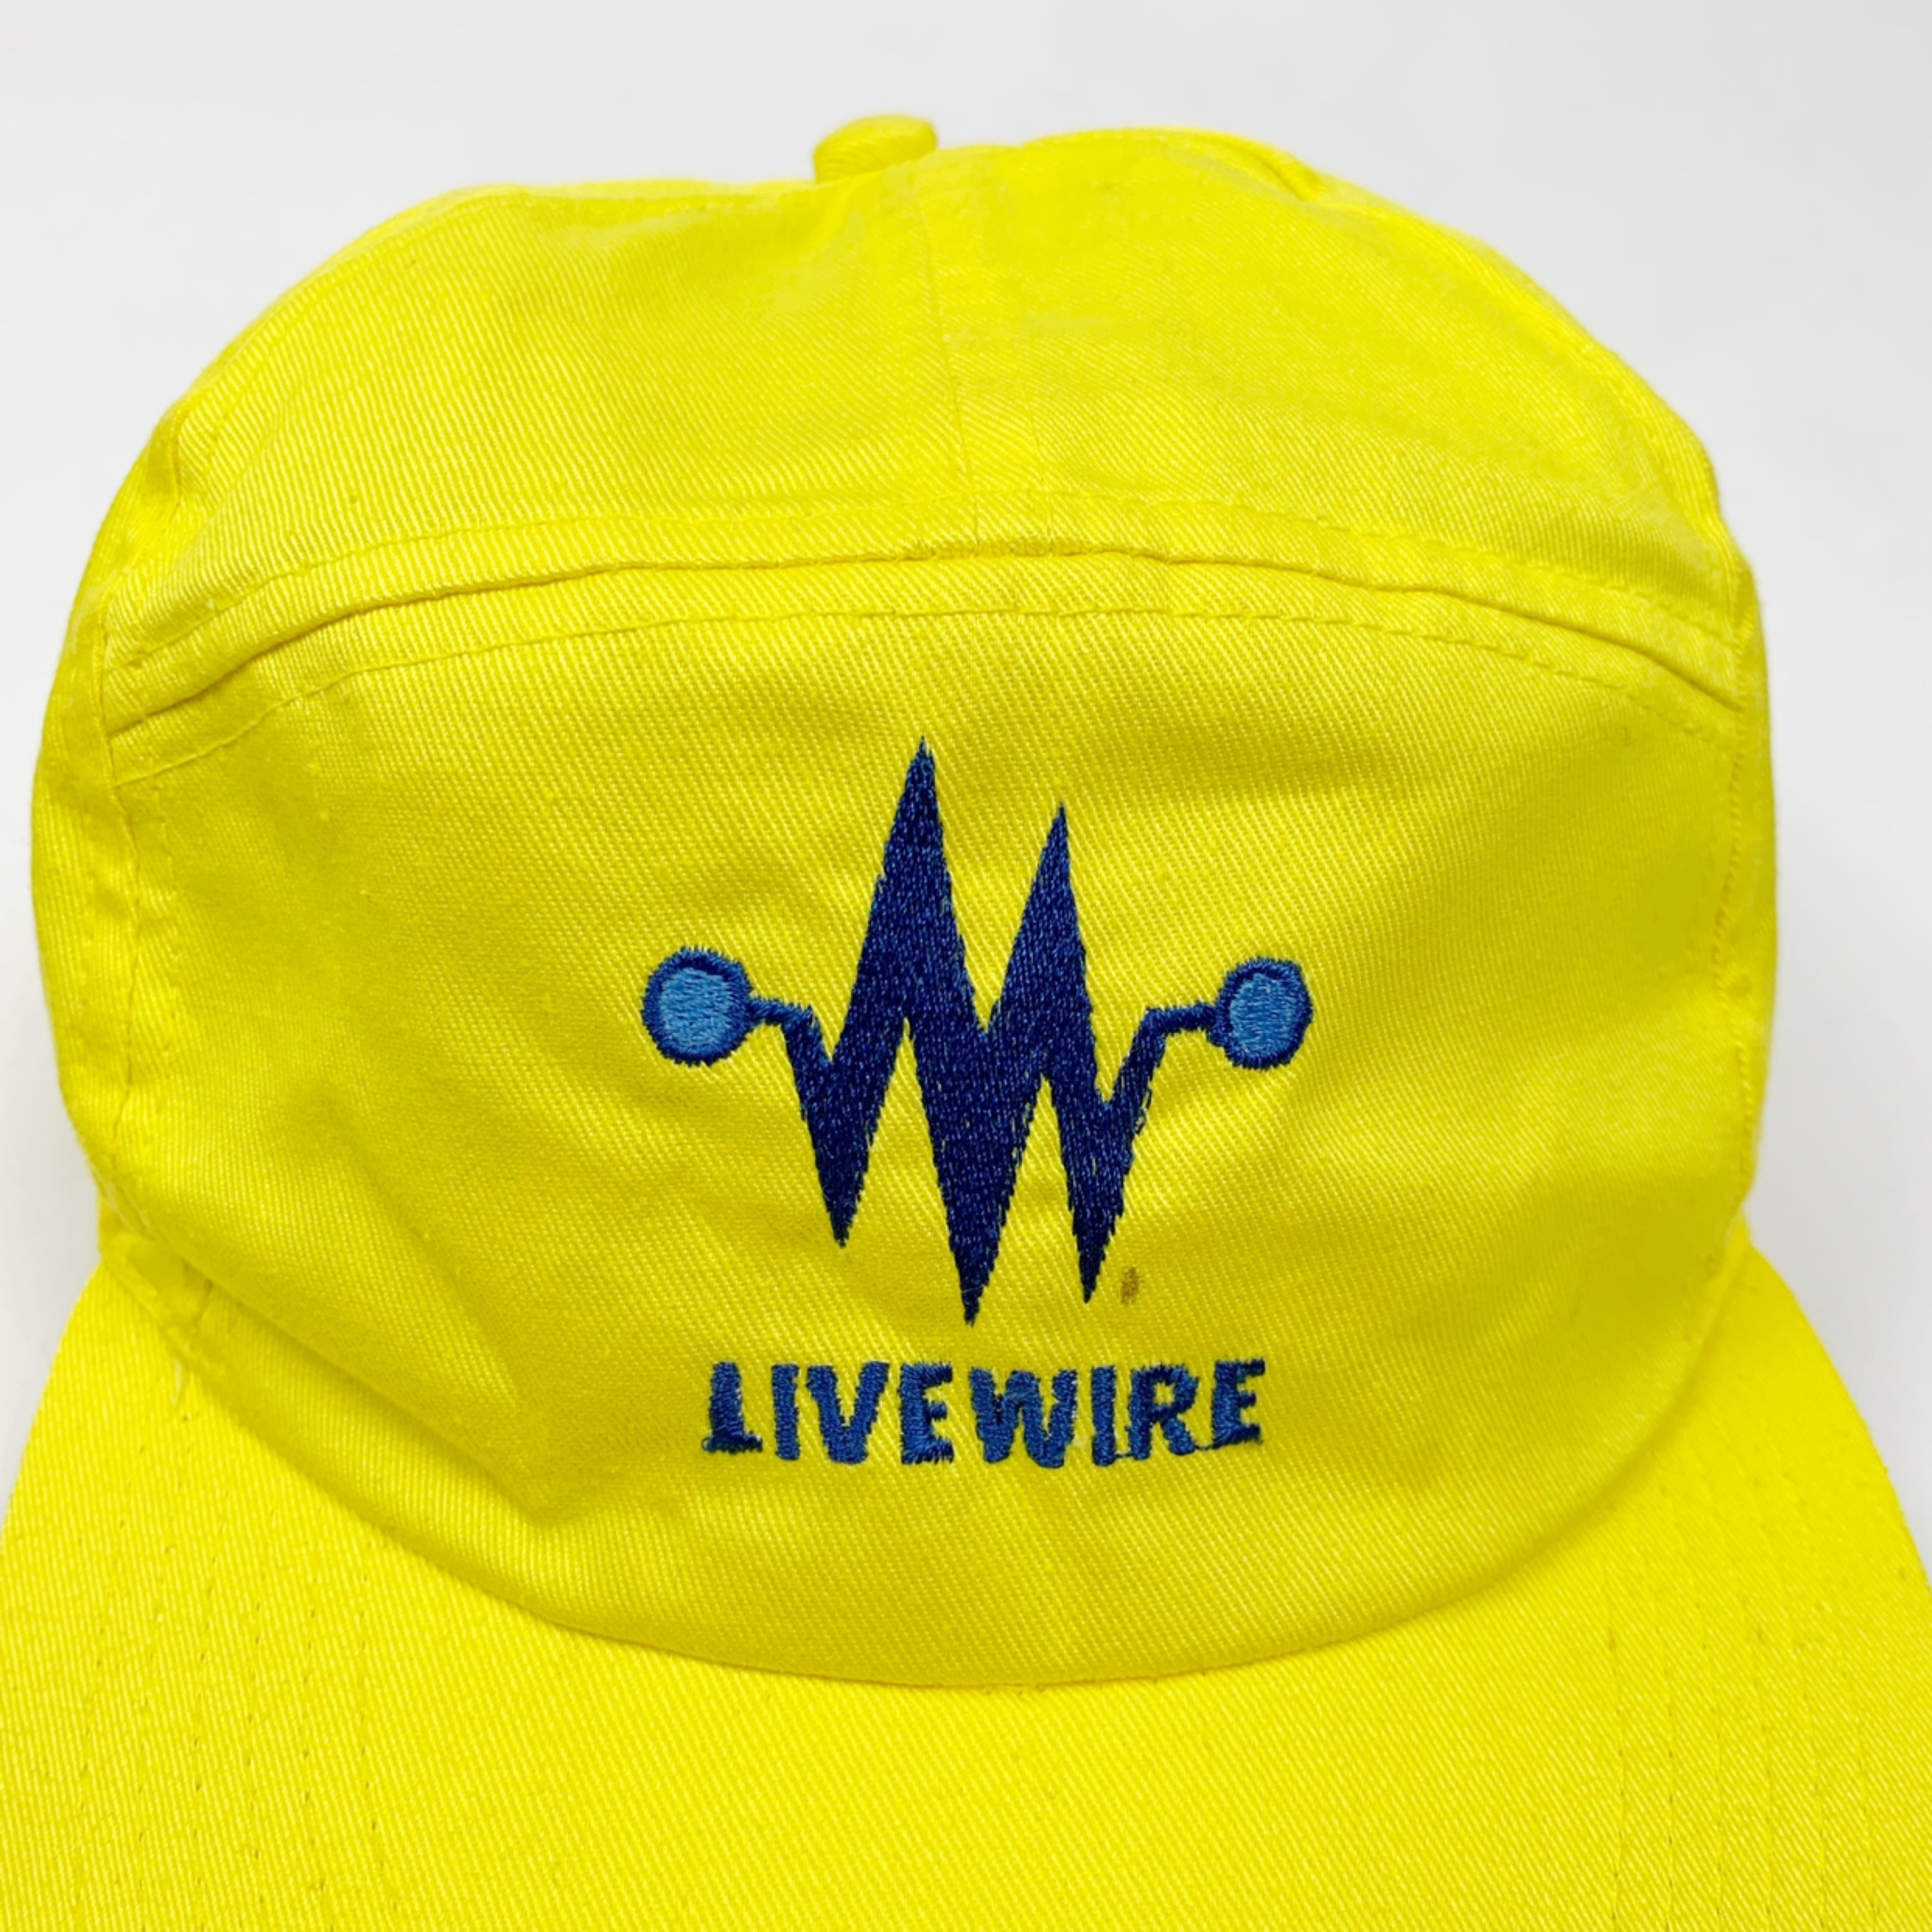 Vintage Embroidered Livewire Trucker Hat